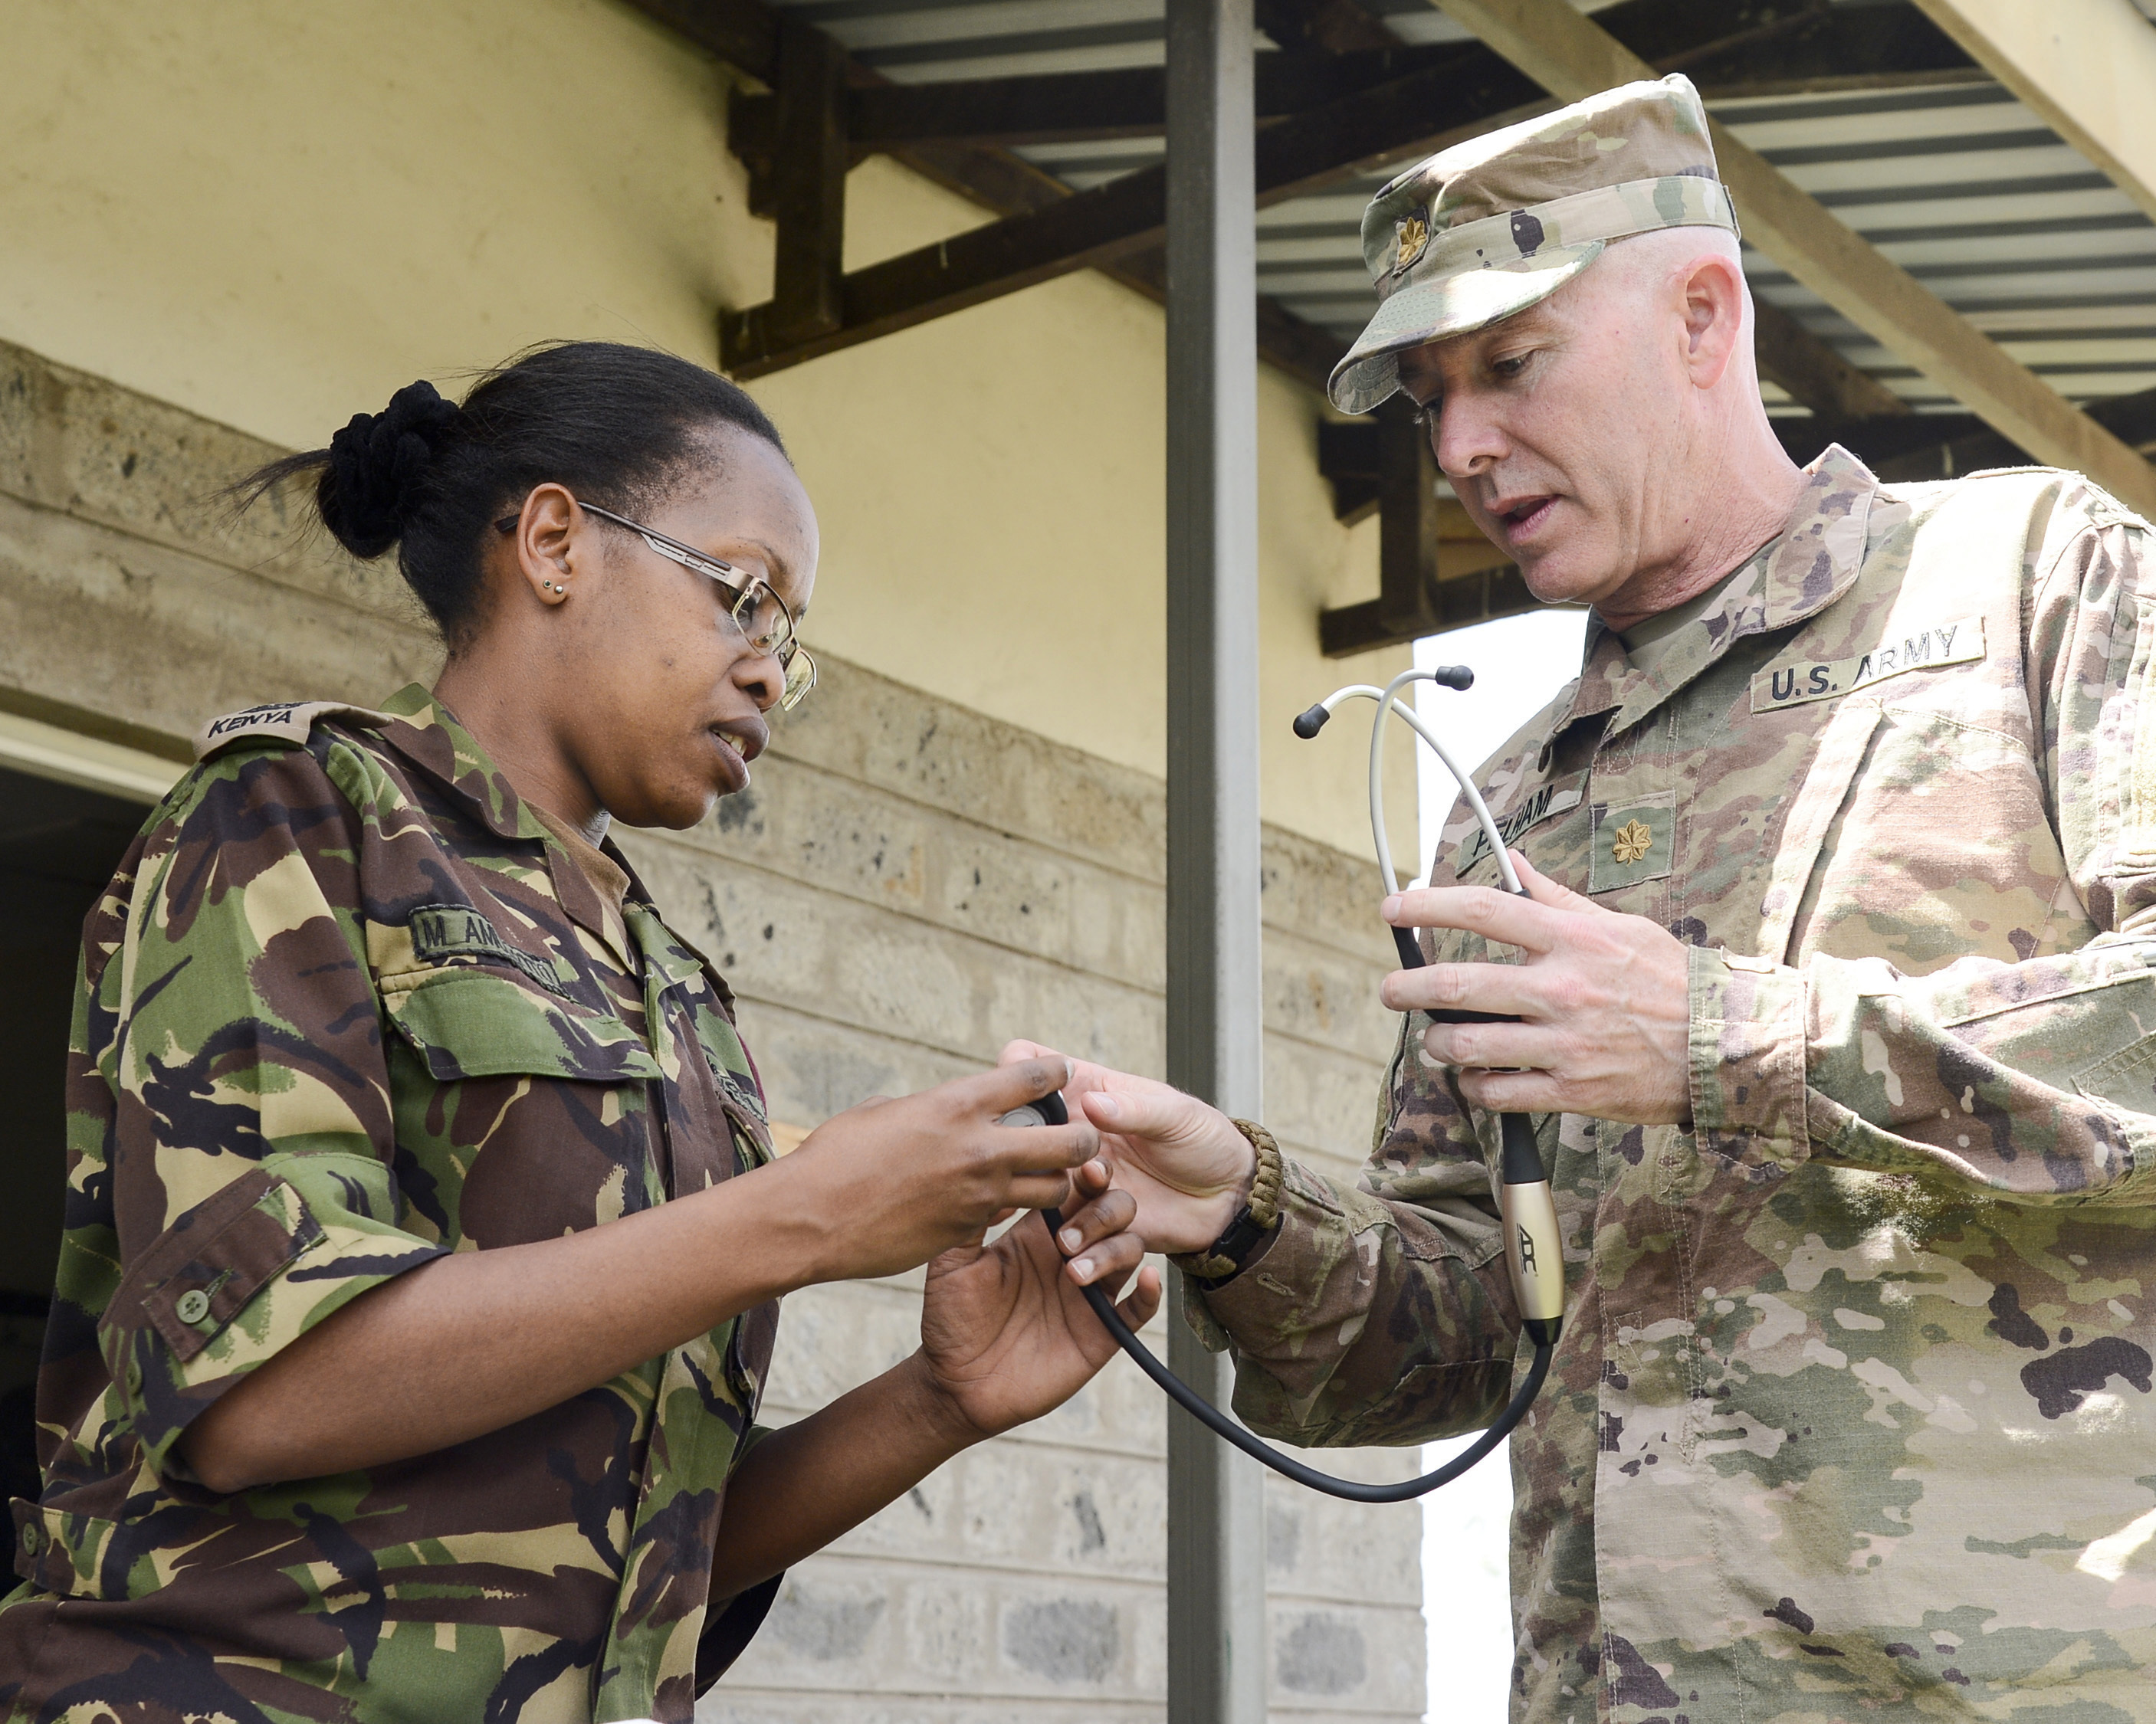 Kenyan Maj. Marion Amulyoto, Lead Veterinarian, 1st Canine Regiment, Kenya Defense Force, and Army Maj. Steven Pelham, 404th Civil Affairs Battalion Functional Specialty Team, Veterinarian Officer in Charge, test a stethiscope during a military working dog knowledge exchange, in Nairobi, Kenya, August 7, 2018. The exchange gave a chance for American and Kenyan forces to learn and work with each other to have a better understanding of each other's capabilities. (U.S. Navy Photo by Mass Communication Specialist 2nd Class Timothy M. Ahearn)